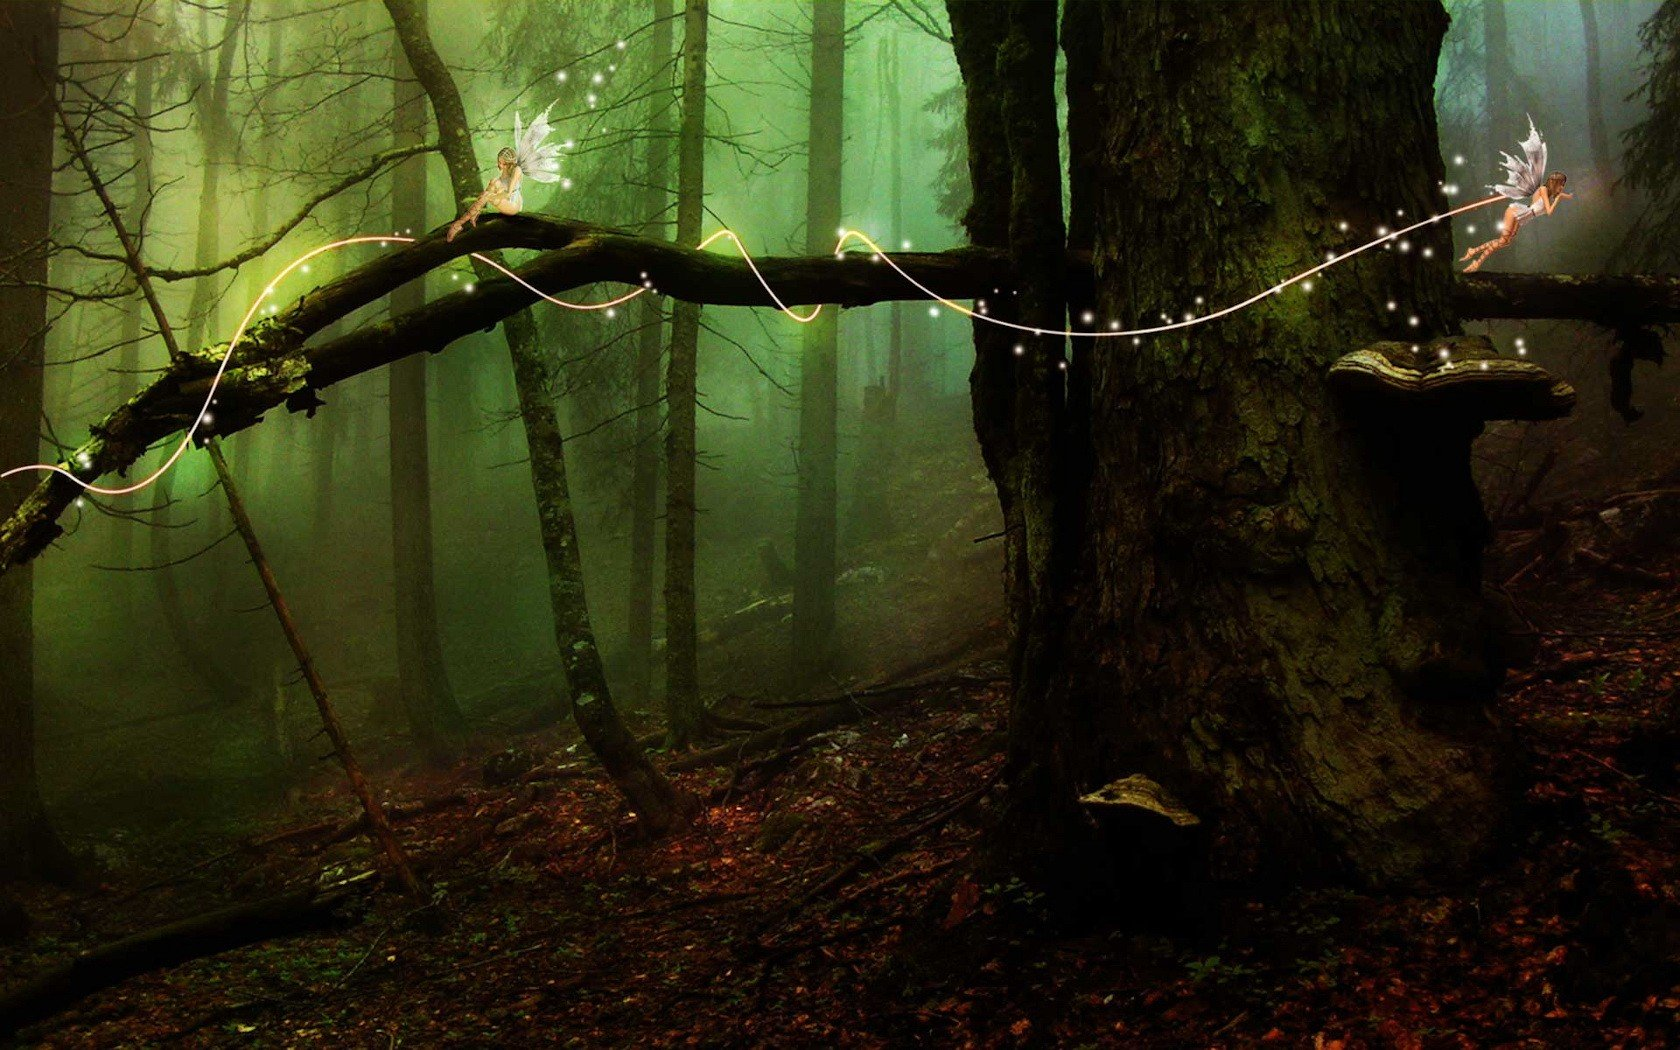 enchanted fairy forest - HD1680×1050